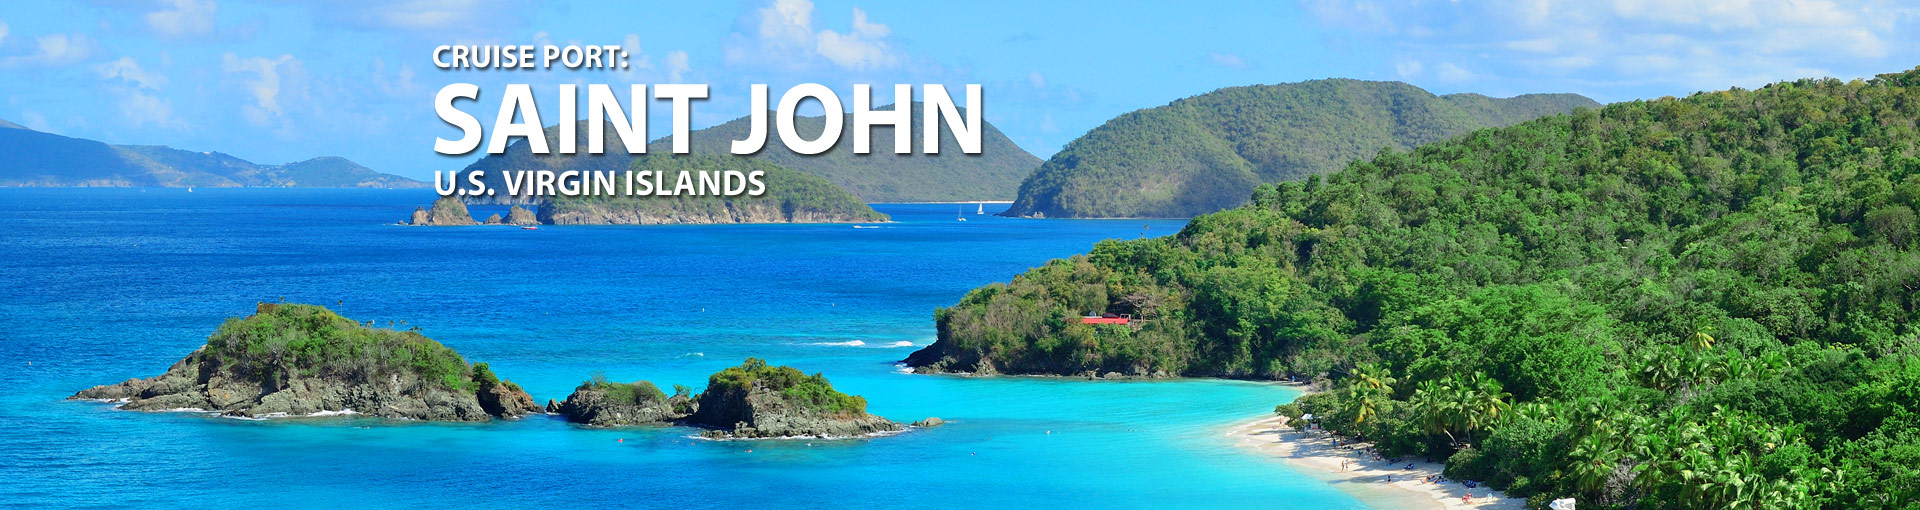 Cruises to St. John, U.S. Virgin Islands